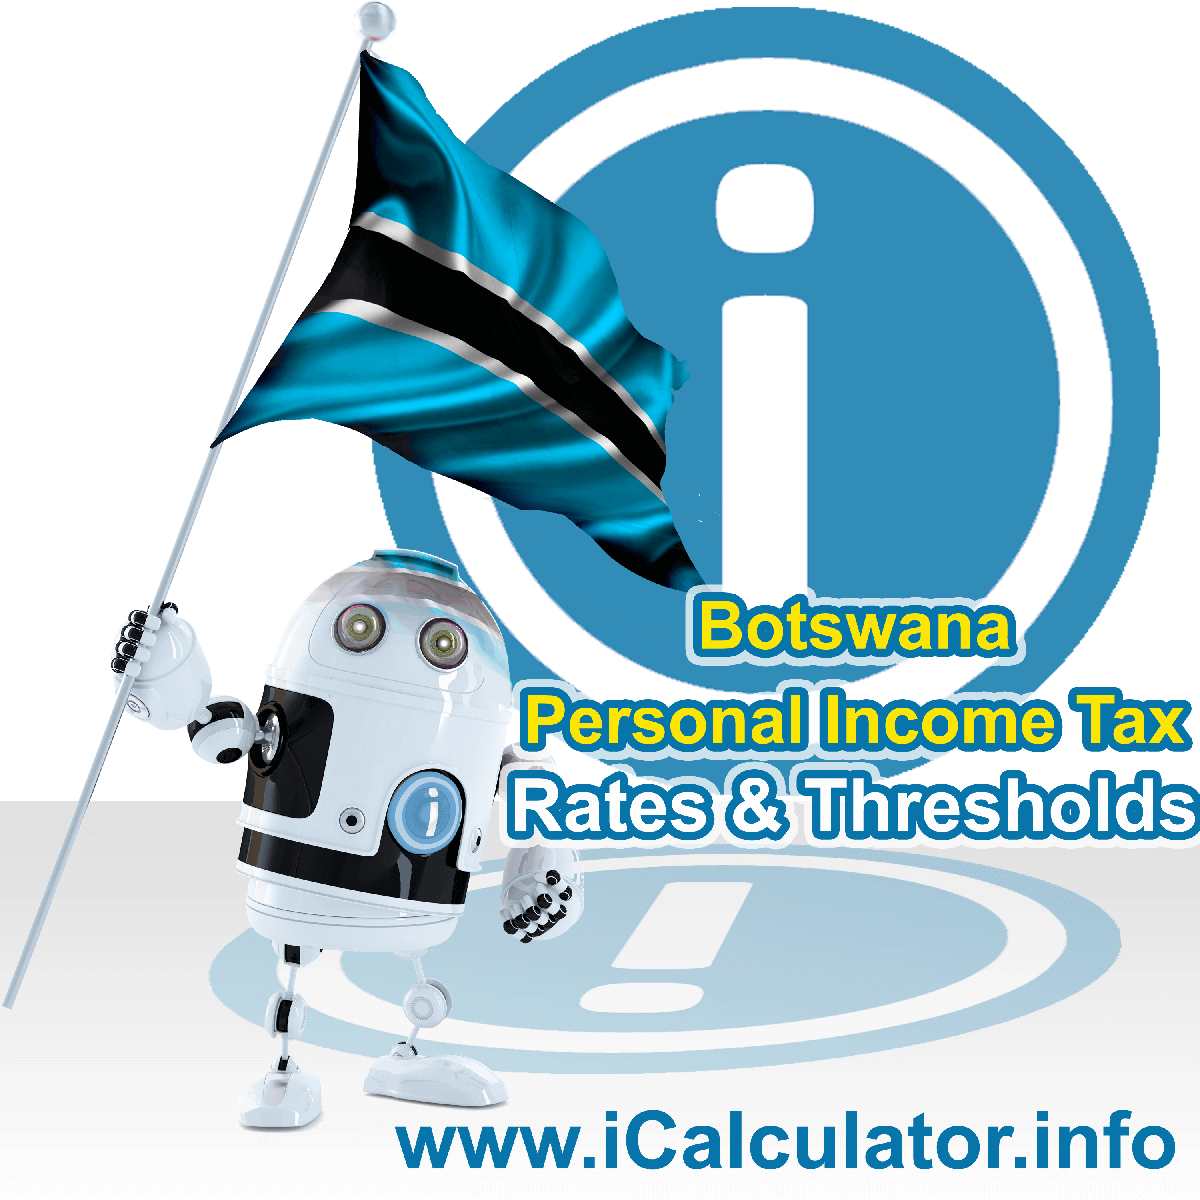 Botswana Salary Calculator. This image shows the Botswanaese flag and information relating to the tax formula for the Botswana Tax Calculator